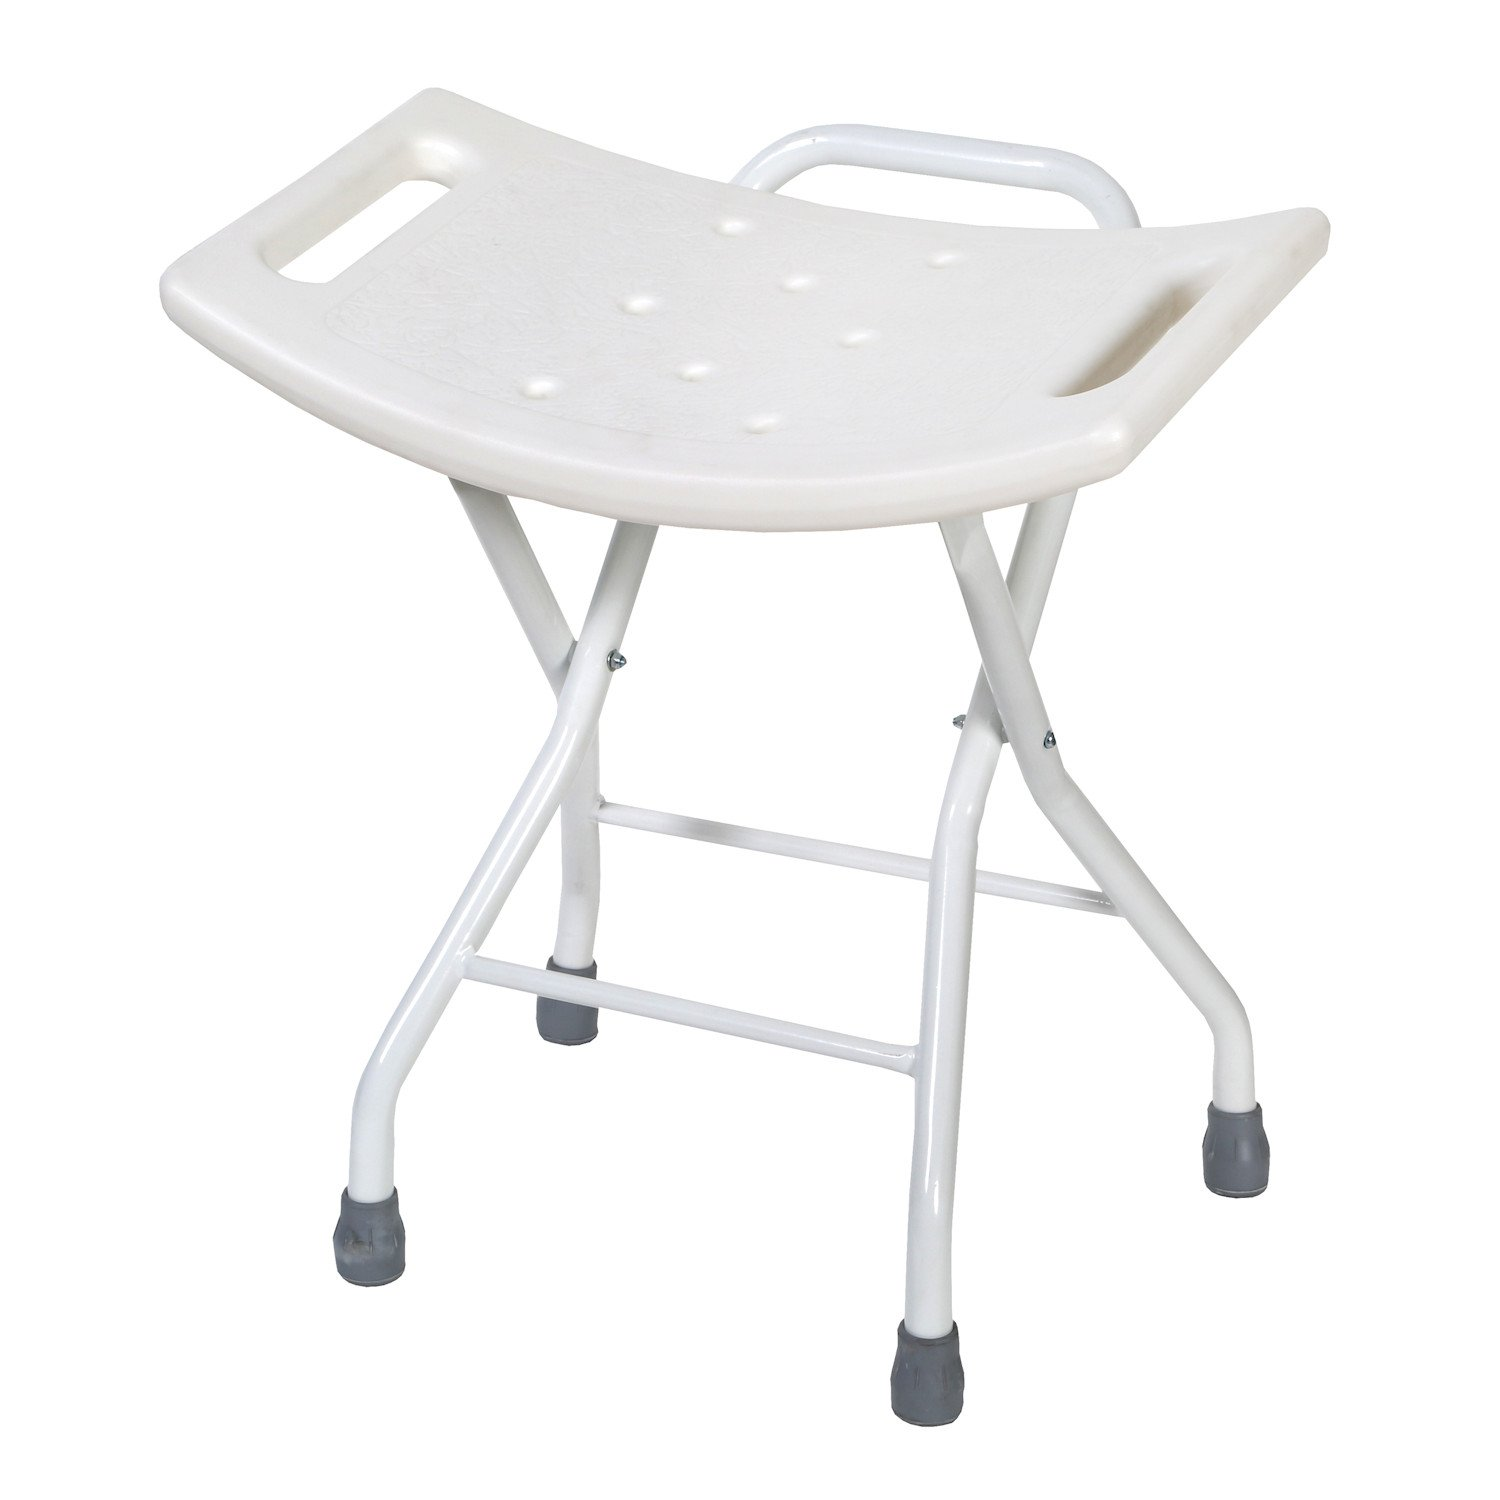 Folding Bath and Shower Safety Seat Stool with Steel Frame by SUPPORT PLUS